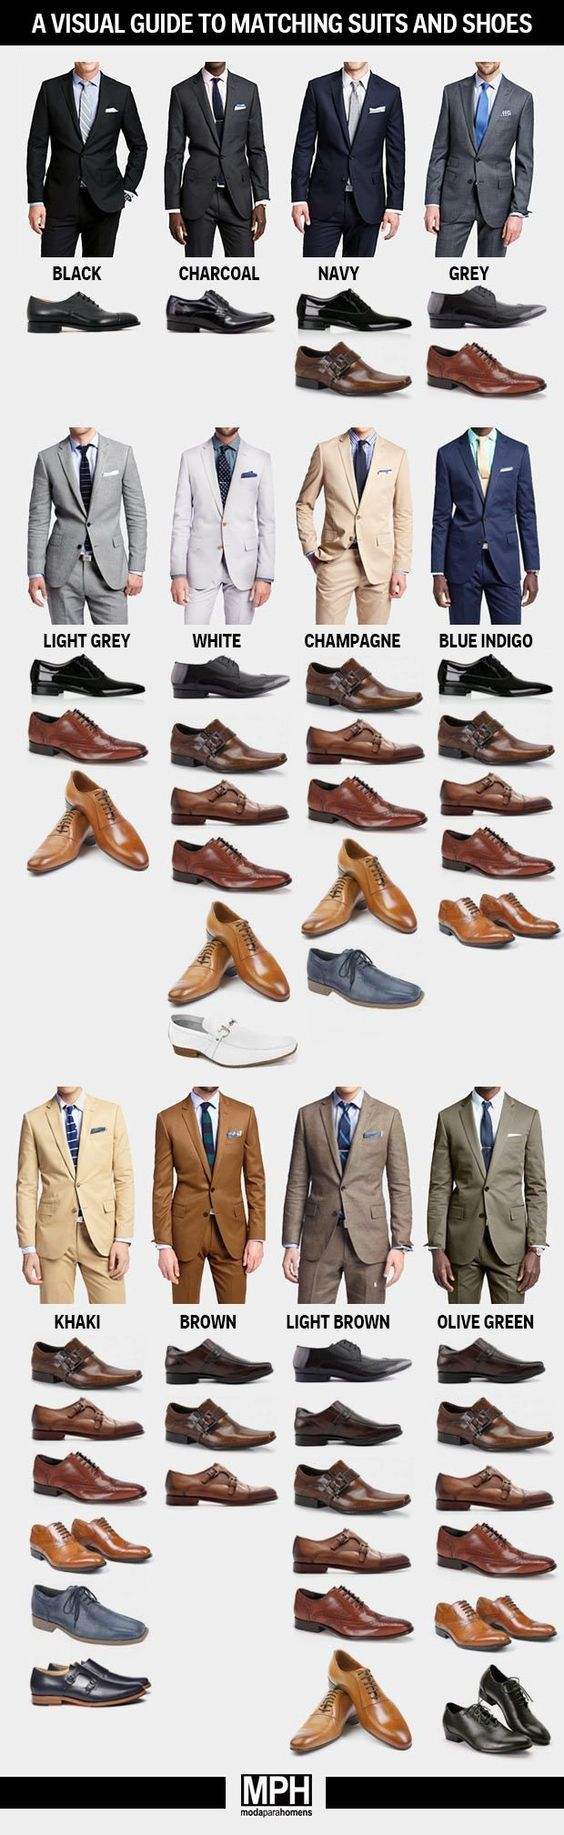 How to pick the perfect pair of shoes for every color suit Read more: http://www.businessinsider.com/how-to-pick-shoes-for-every-color-suit-2015-5#ixzz3dUldEZNR: